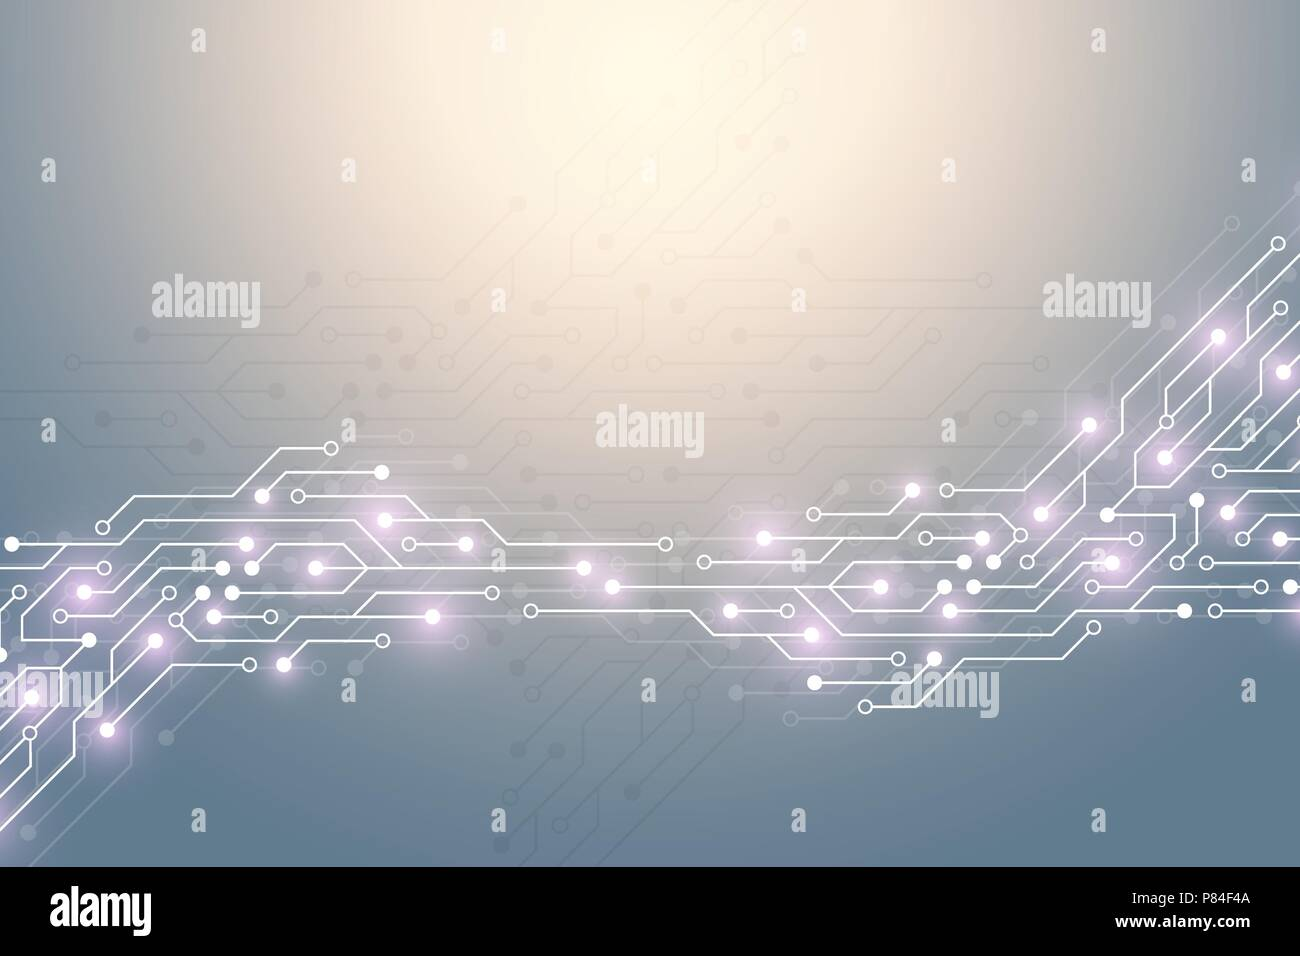 Abstract Technology Background With Circuit Board Texture Graphic Printed Electronics Vector Design Electronic Motherboard Communication And Engineering Concept